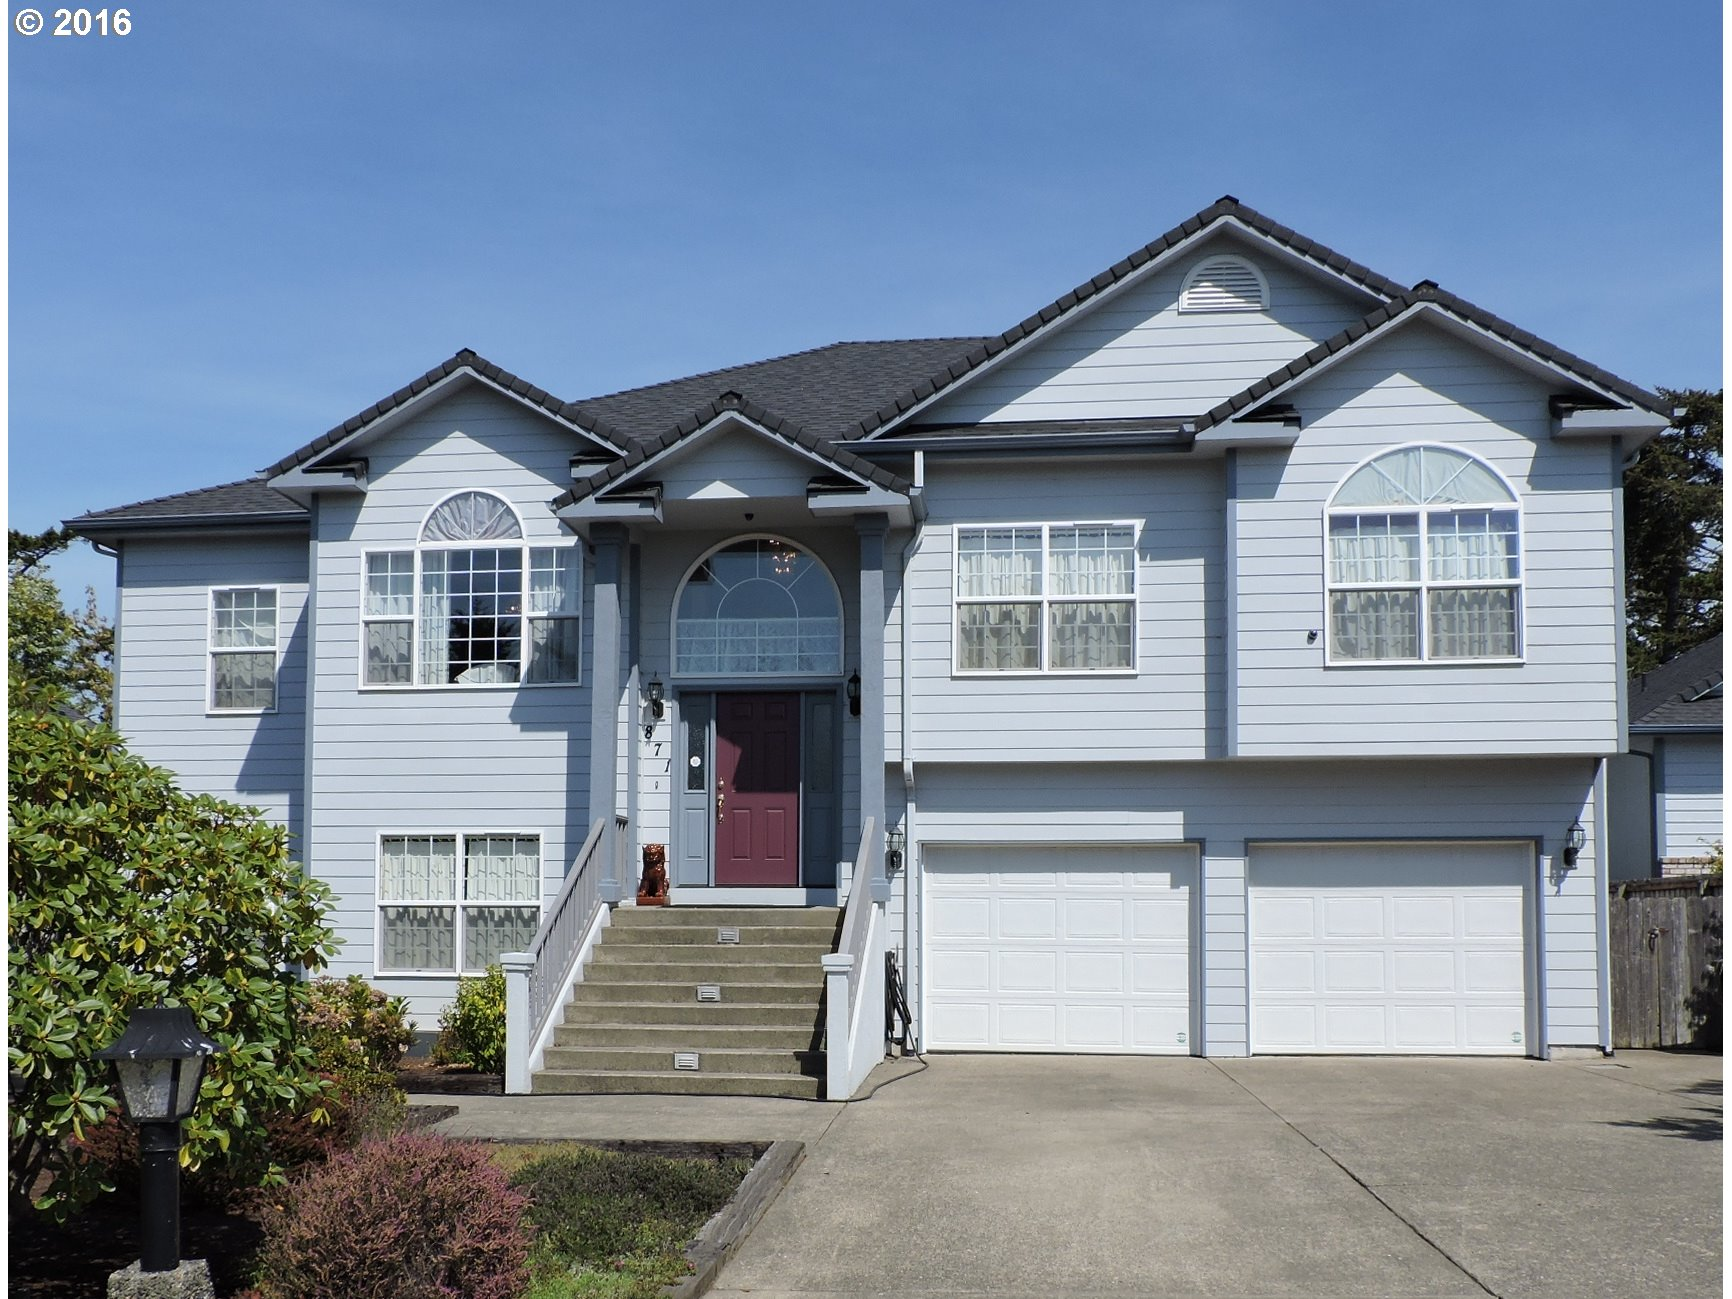 871 8TH ST, Florence, OR 97439